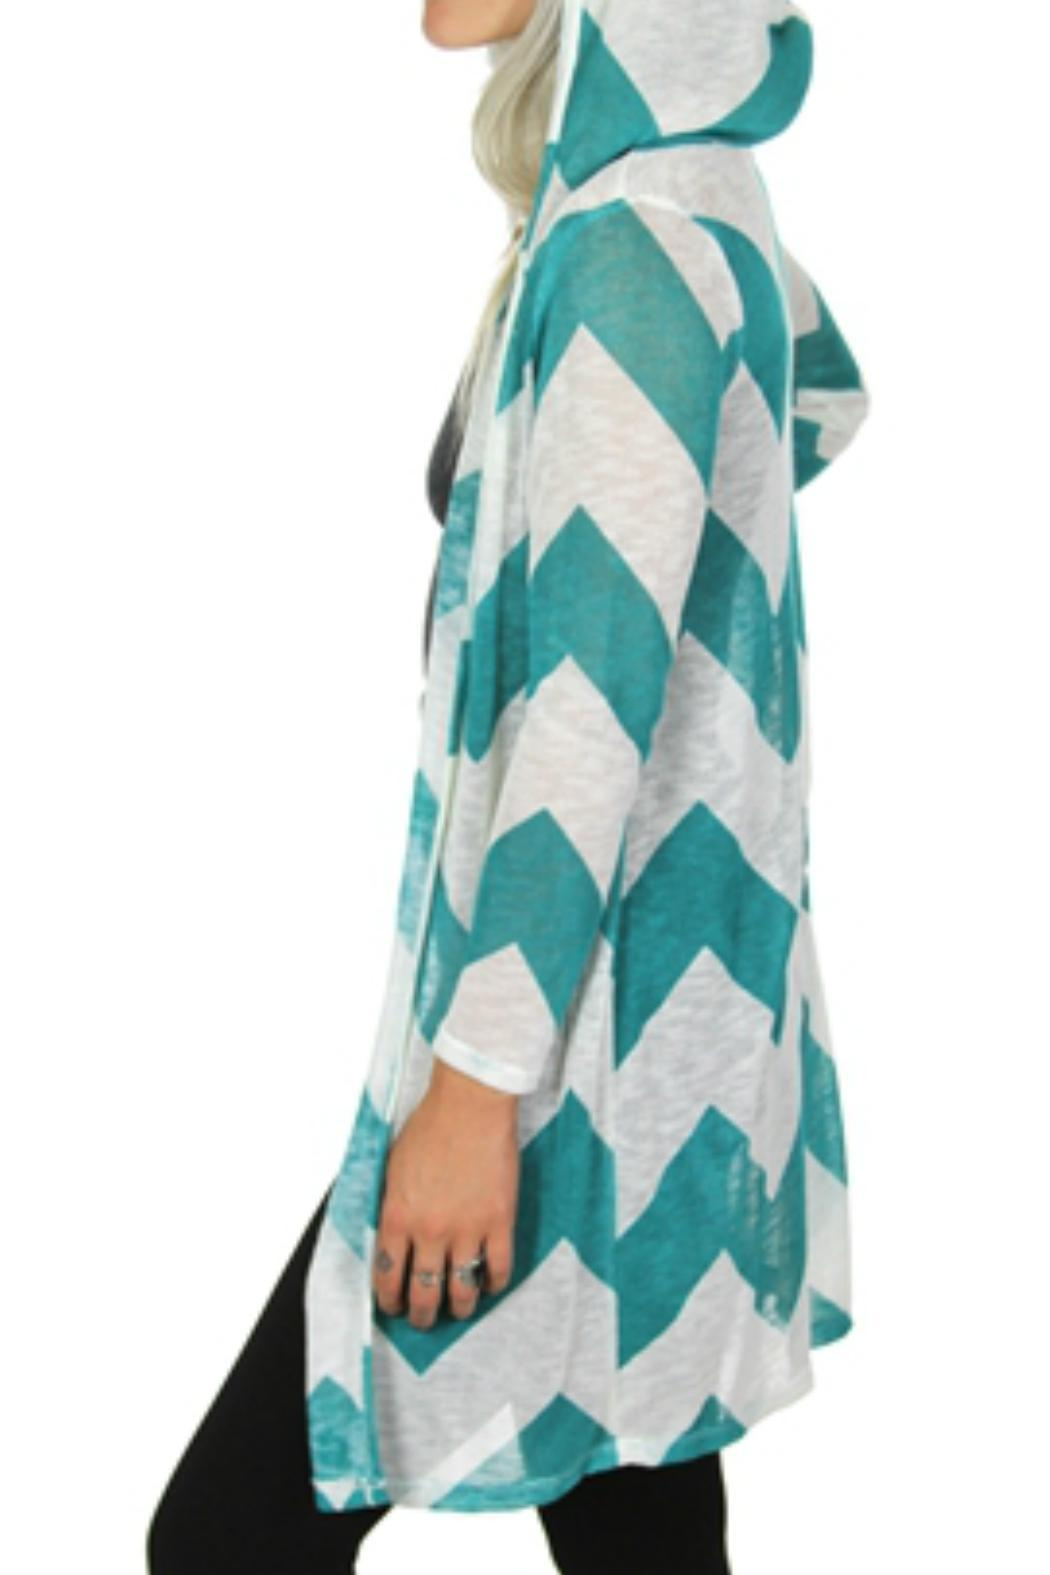 30608c0acce Silvergate Mia Chevron Shrug from Oregon by Nikki Jane's Boutique ...